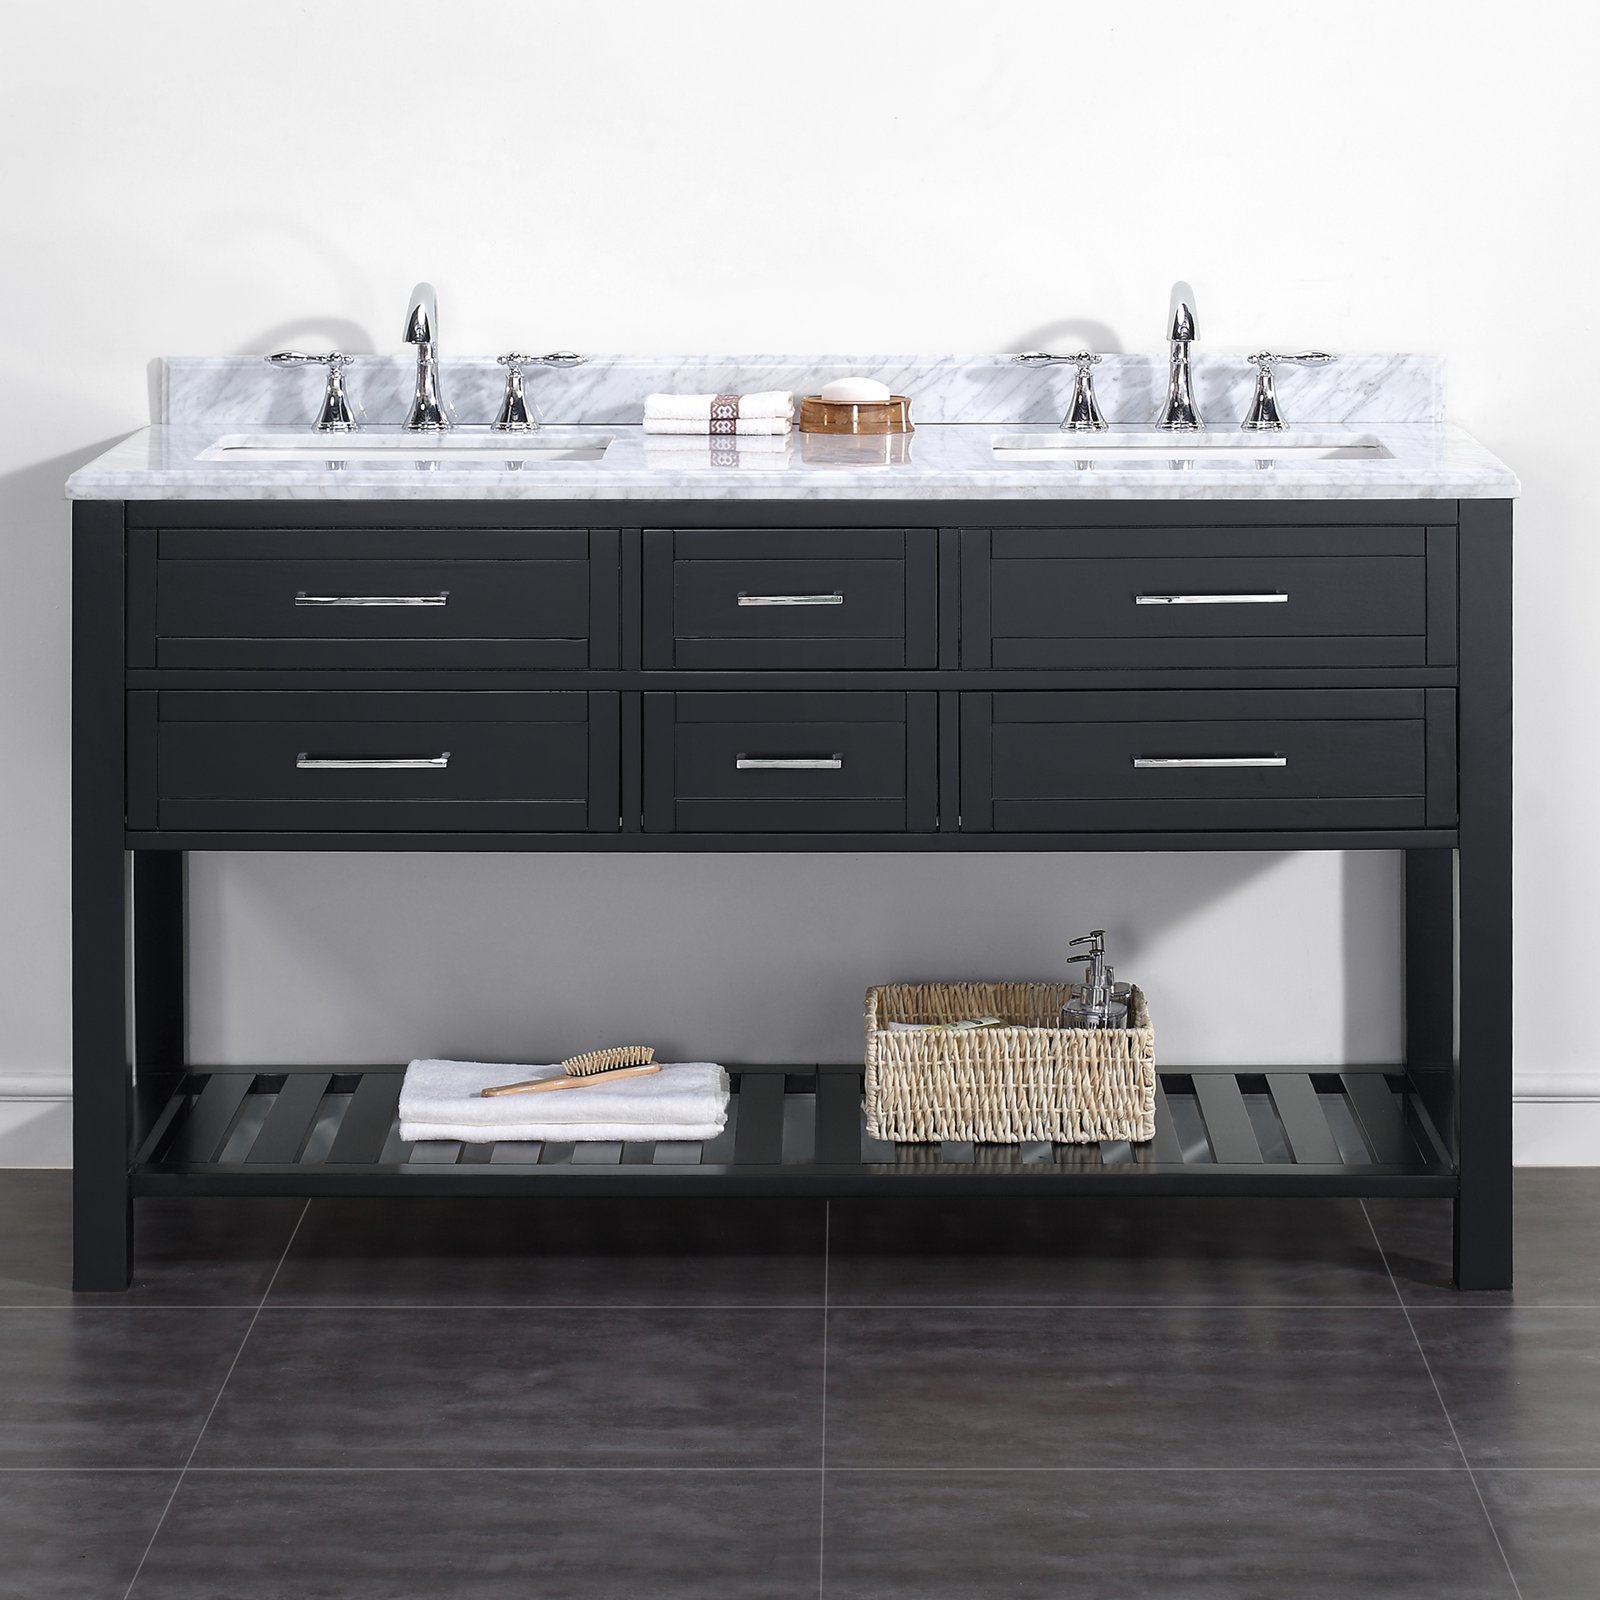 Ove Decors Sarasota 60 In Double Bathroom Vanity Walmart Com Walmart Com